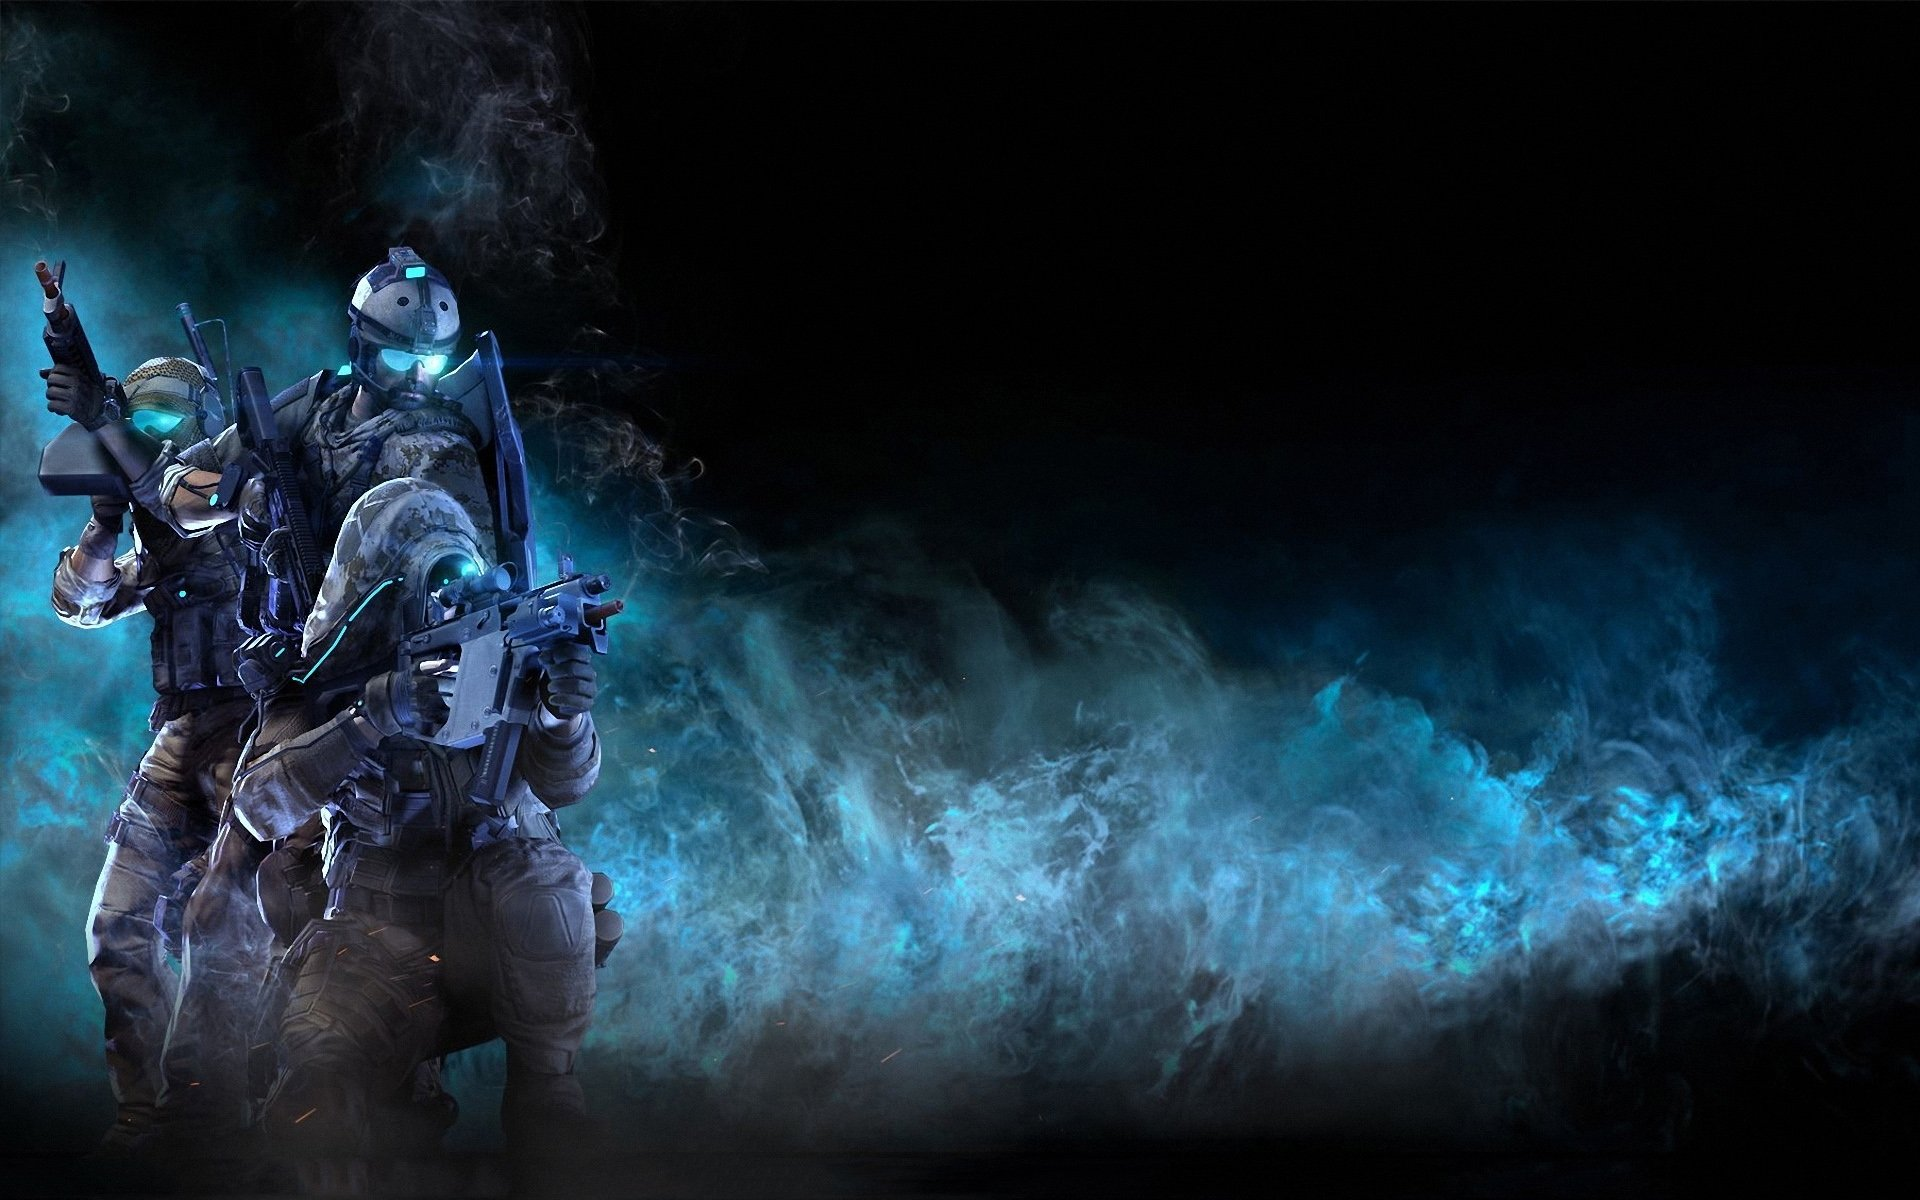 Tom Clancy's Ghost Recon Phantoms HD Wallpaper